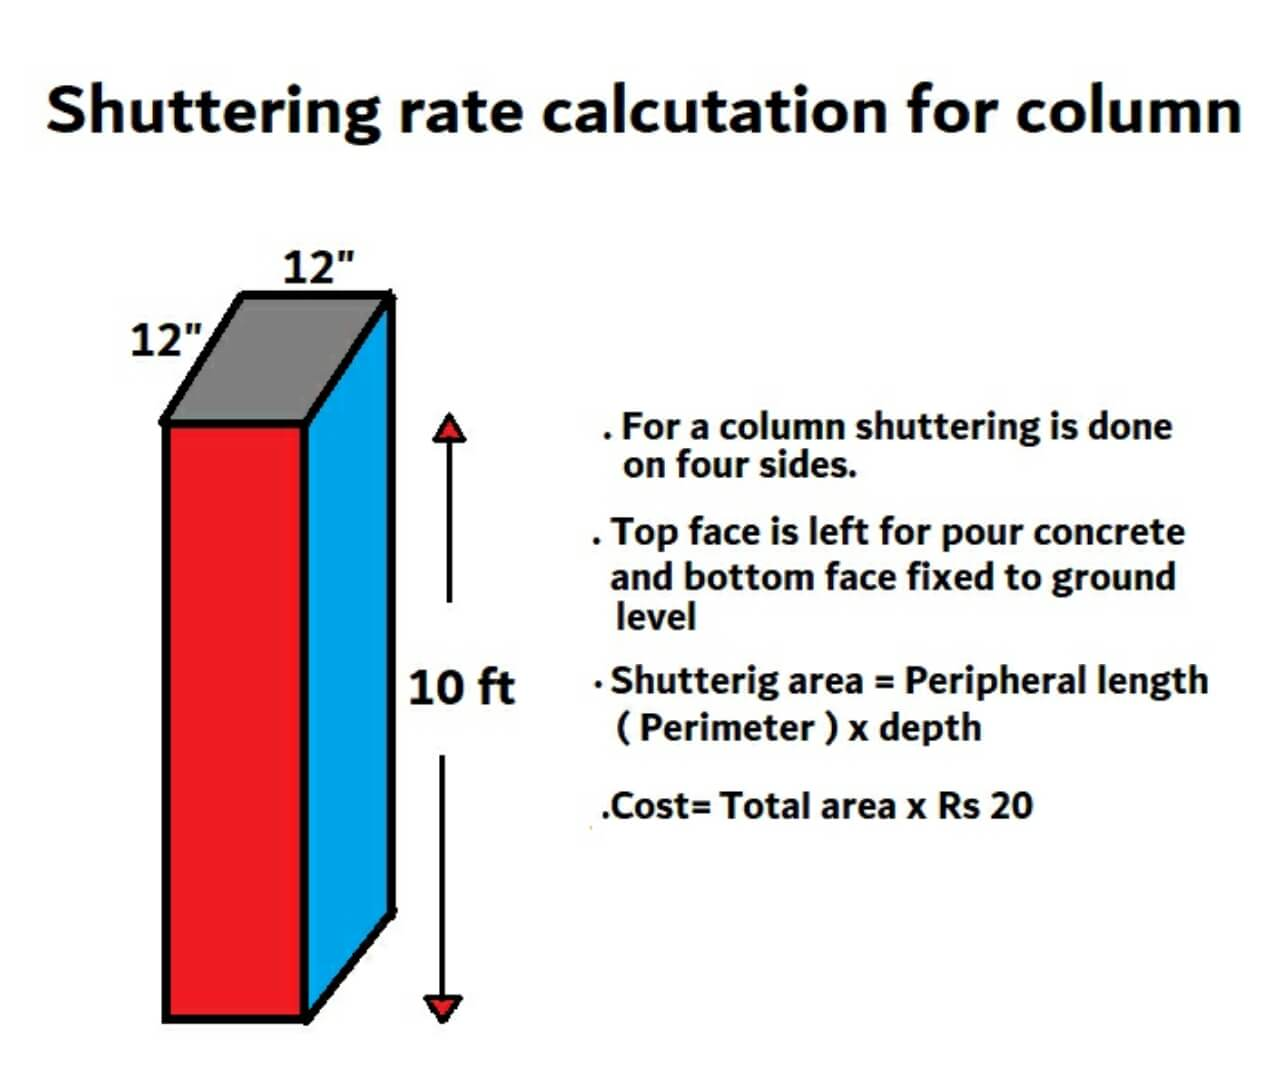 Shuttering rate/ cost calculation for column